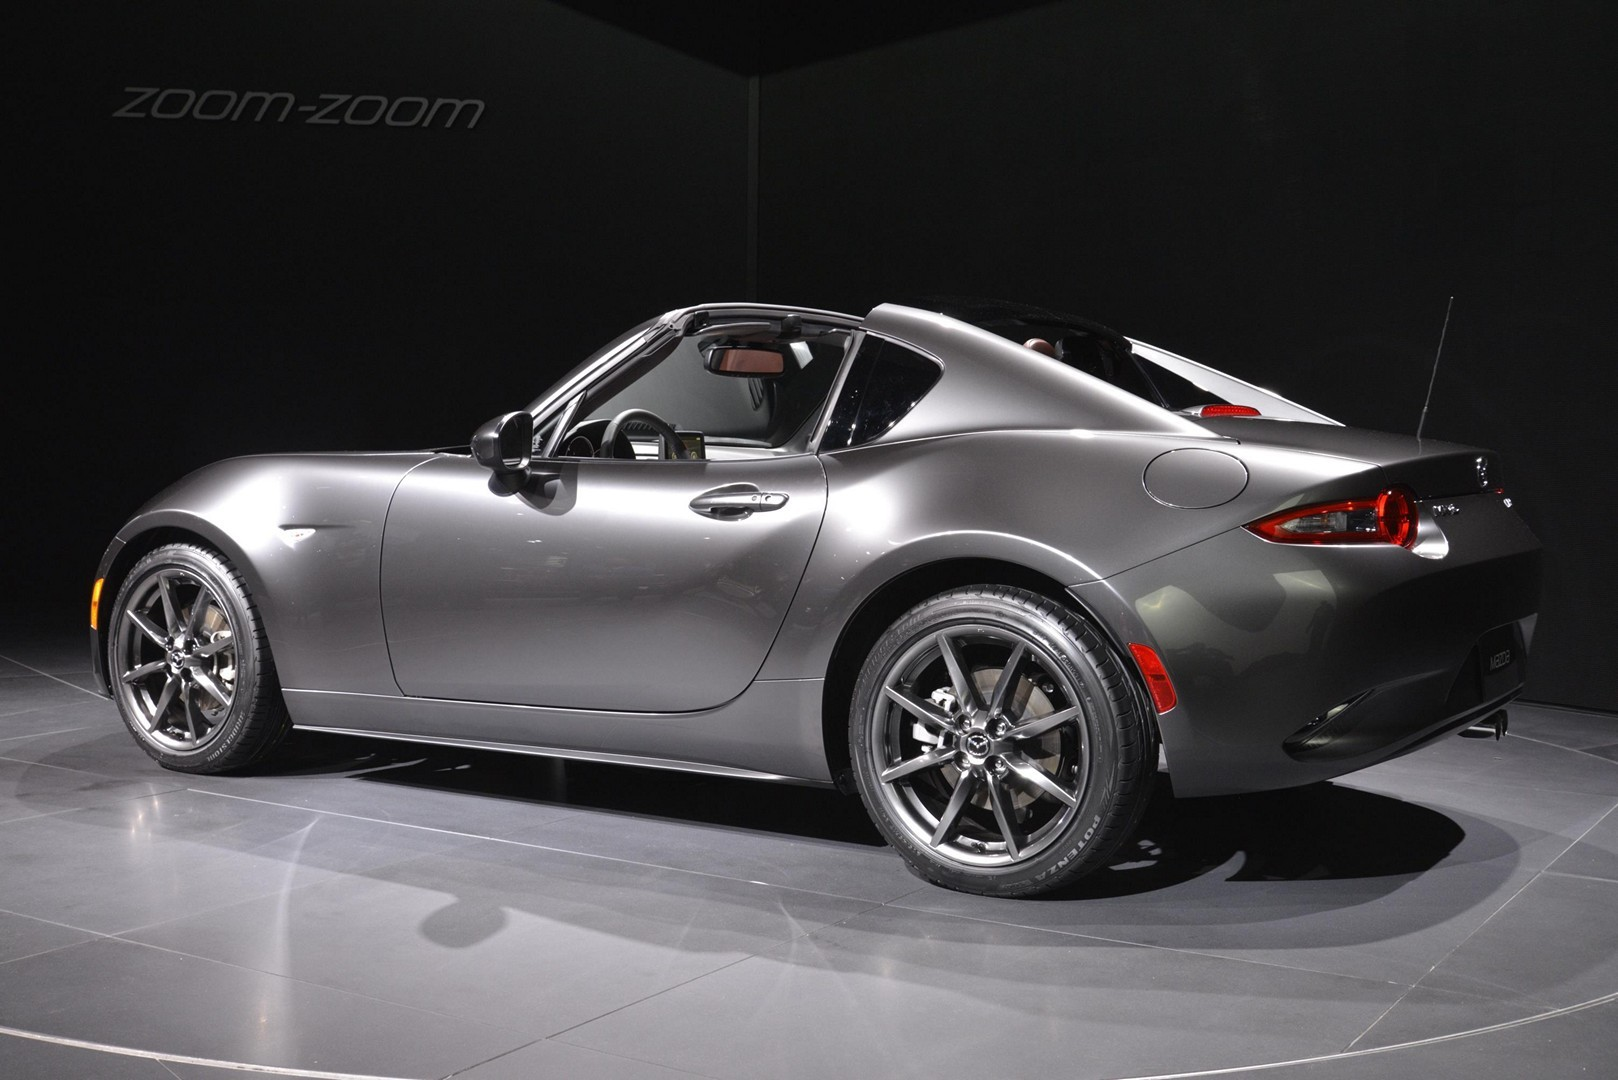 2017 mazda mx 5 miata rf launch edition priced from 33 850 can be pre ordered autoevolution. Black Bedroom Furniture Sets. Home Design Ideas